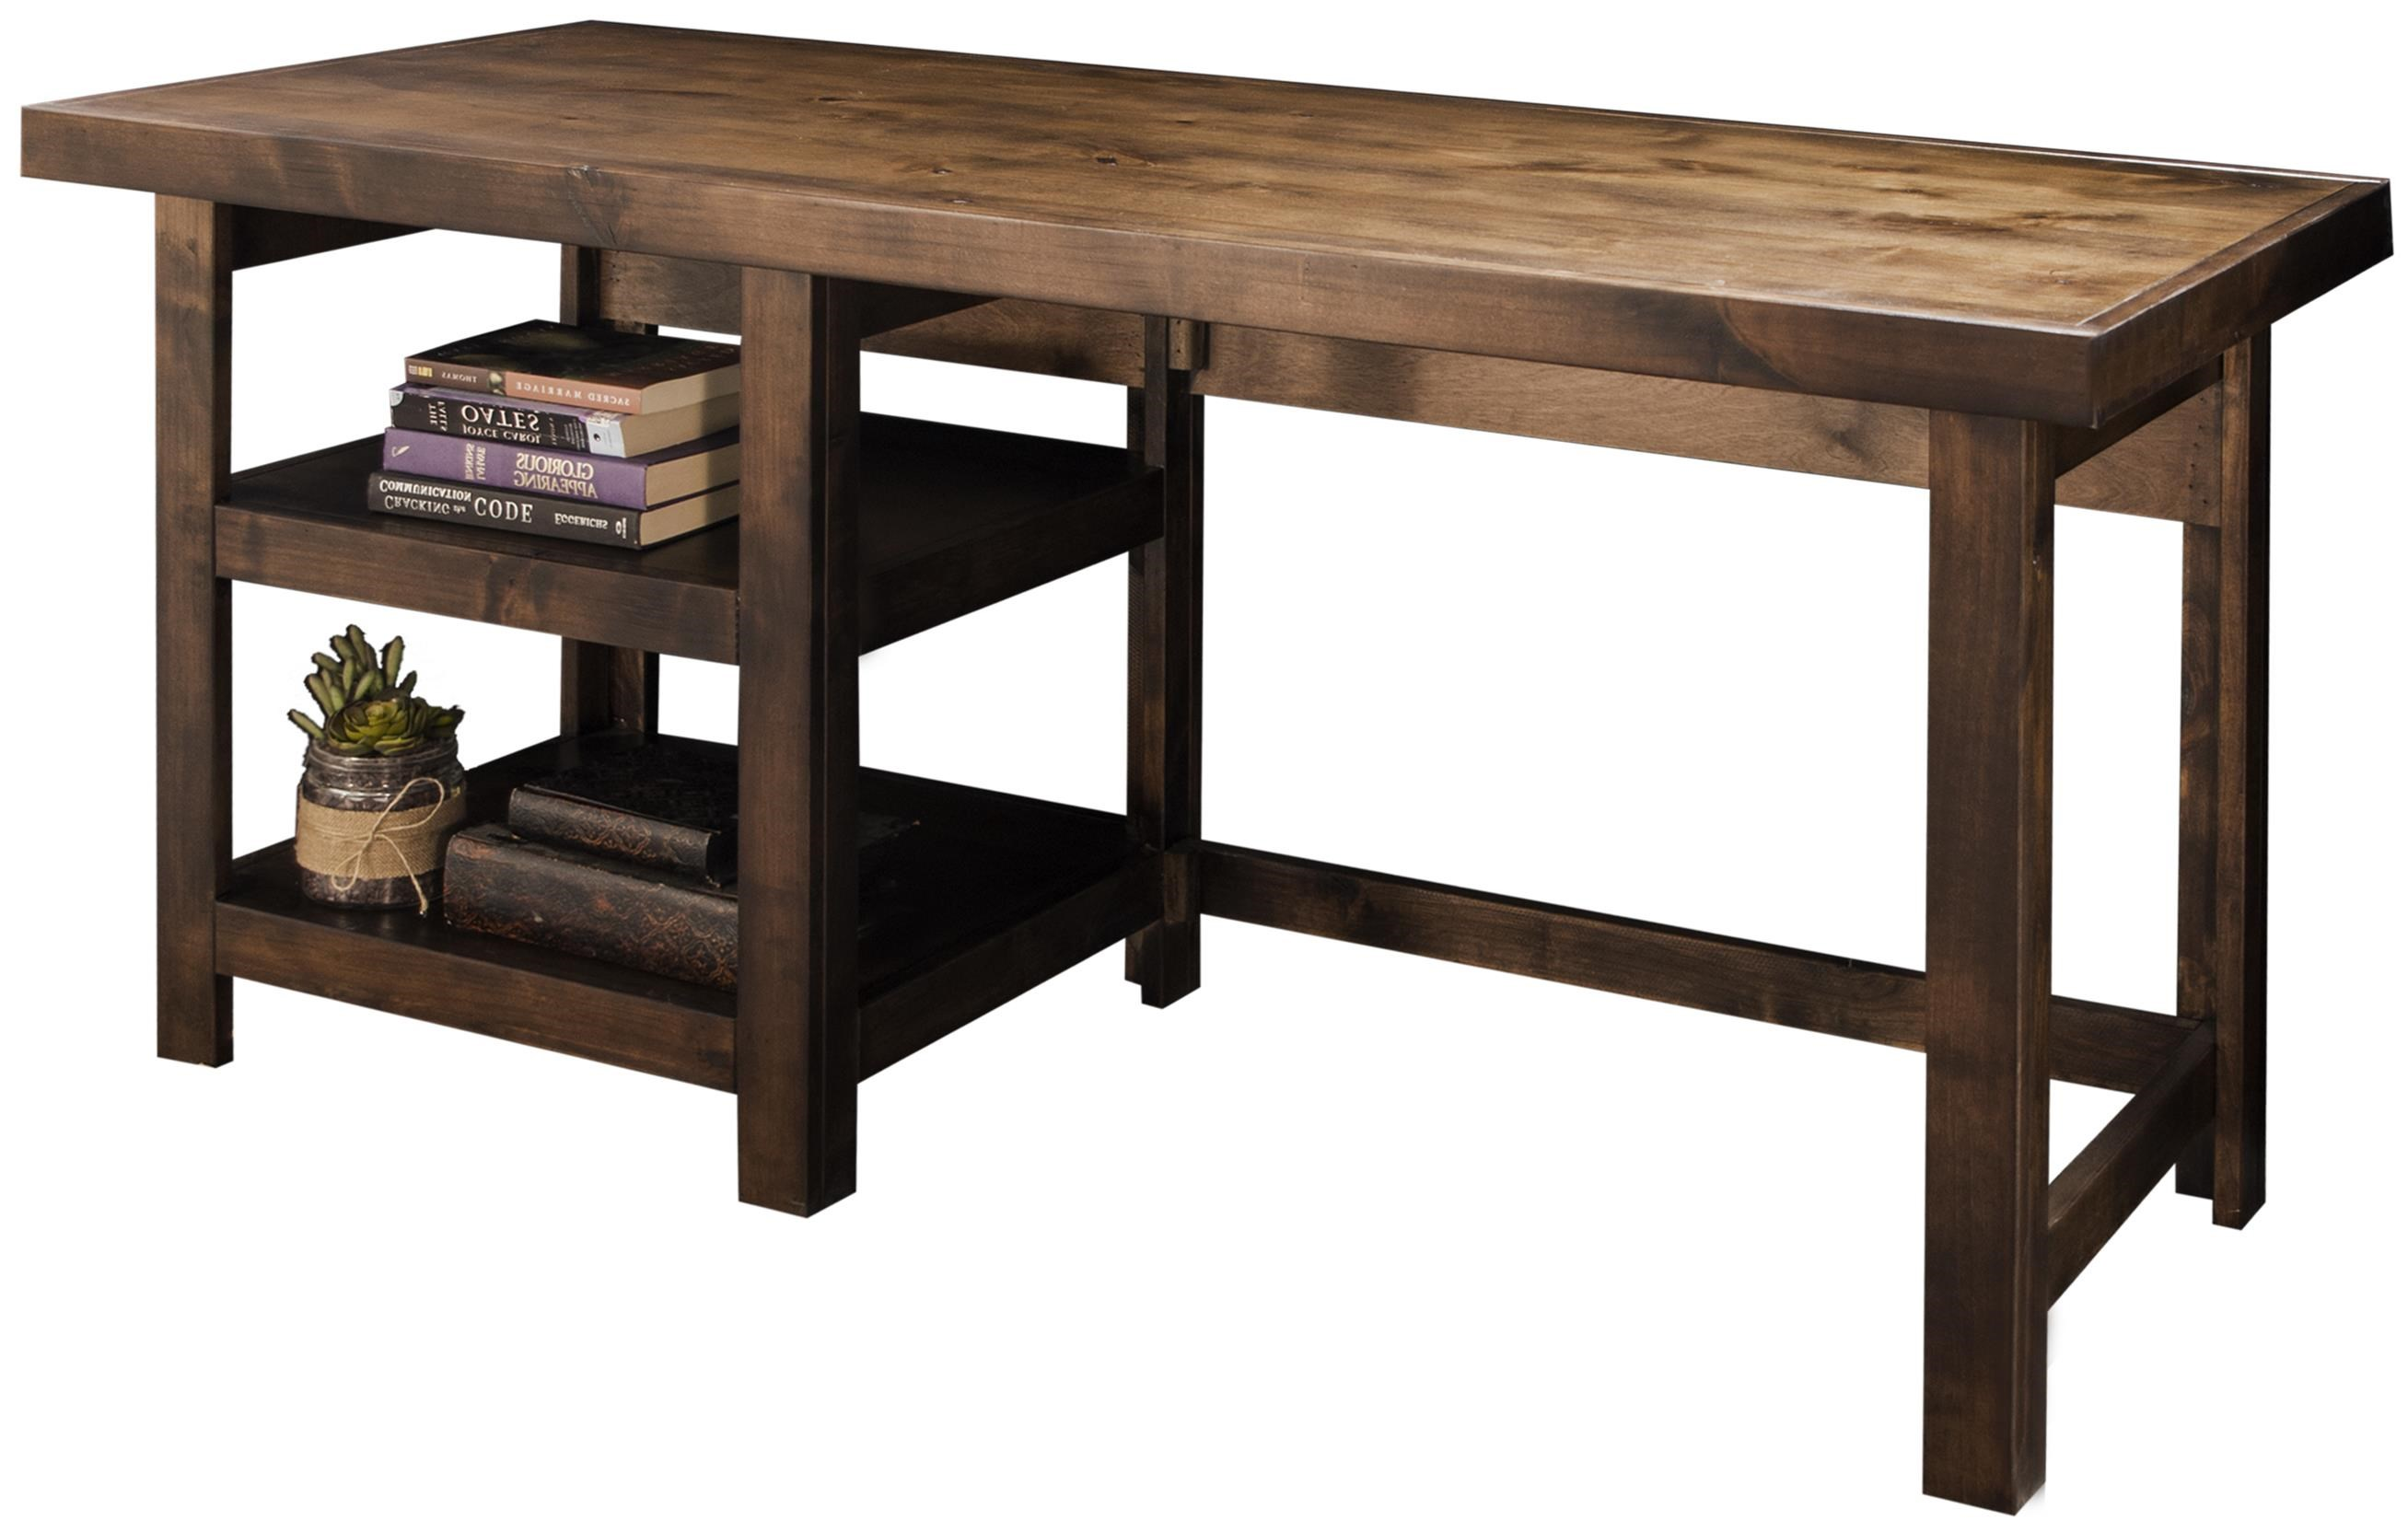 Workstation Furniture Sausalito Workstation With Two Open Shelves By Legends Furniture At Dunk Bright Furniture